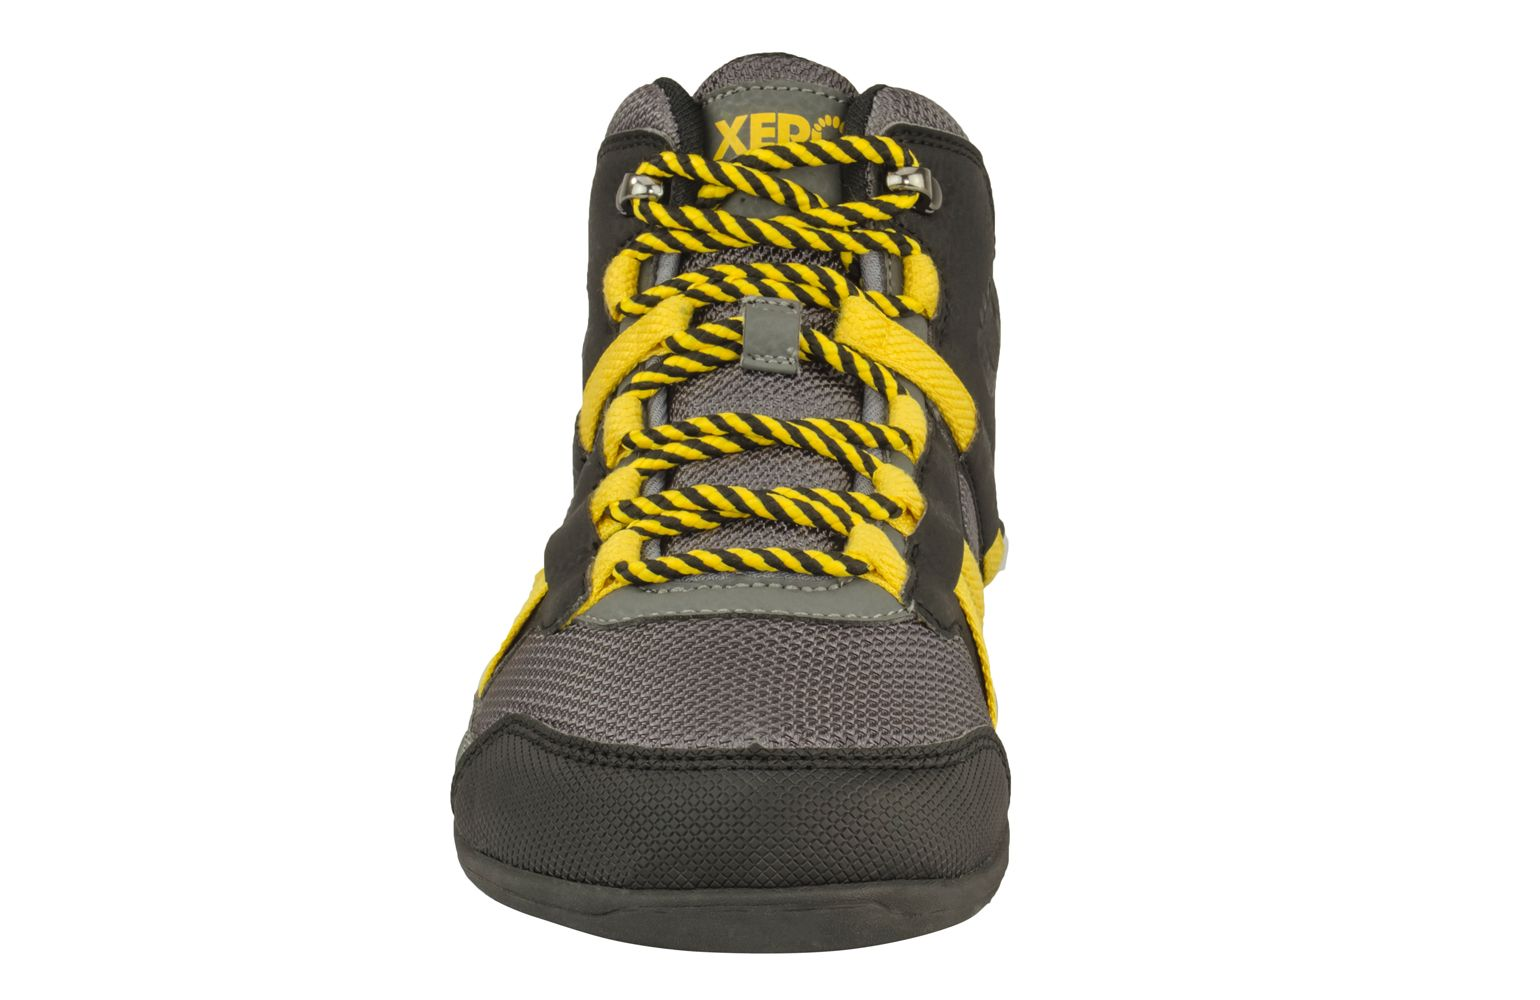 Your favorite adventure hiking boot. Go outdoors - travel, backpack, and hike in this lightweight mi...